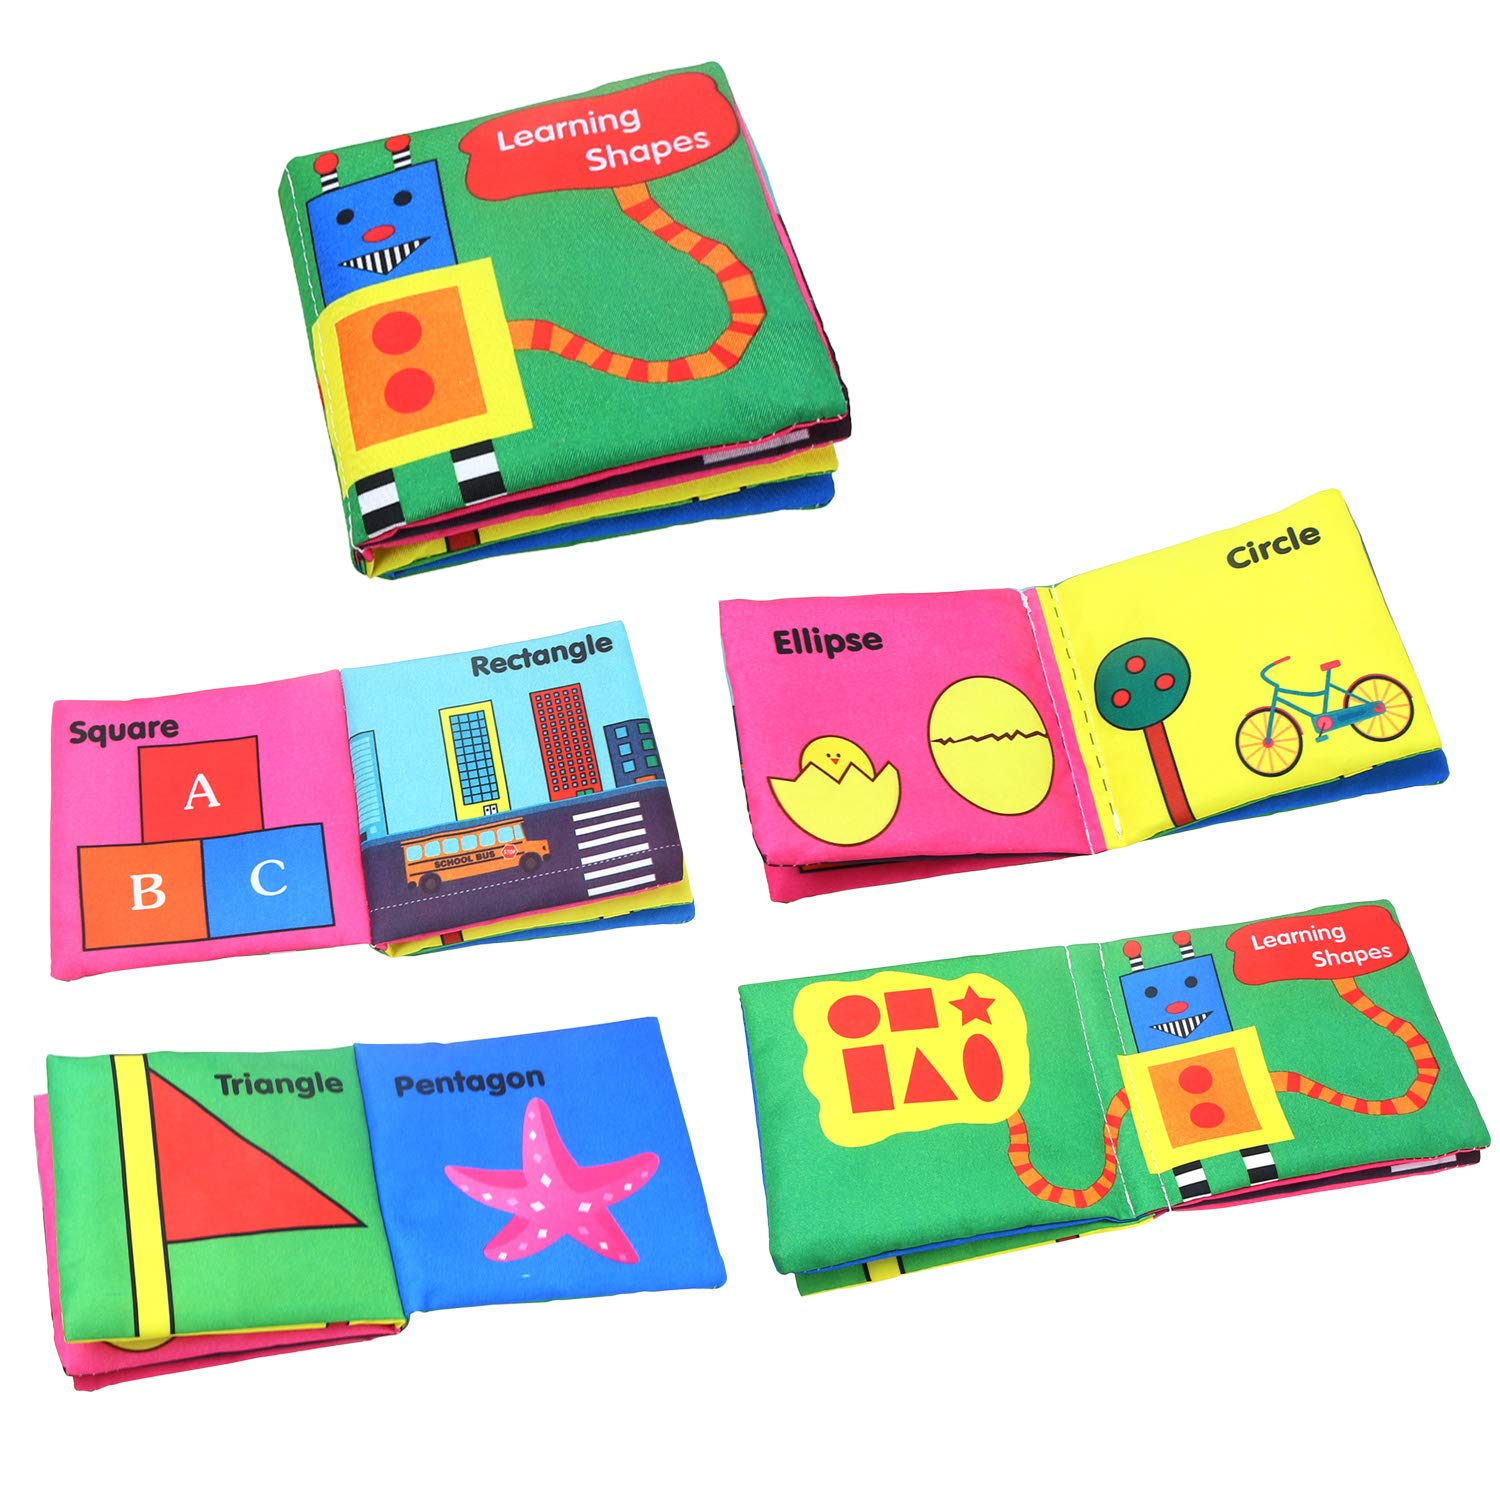 WeltHause Cloth Book Baby Non-Toxic Soft Cloth Book Set Infant Children Educational Toys, Baby Gifts for Boy and Girl, Pack of 6